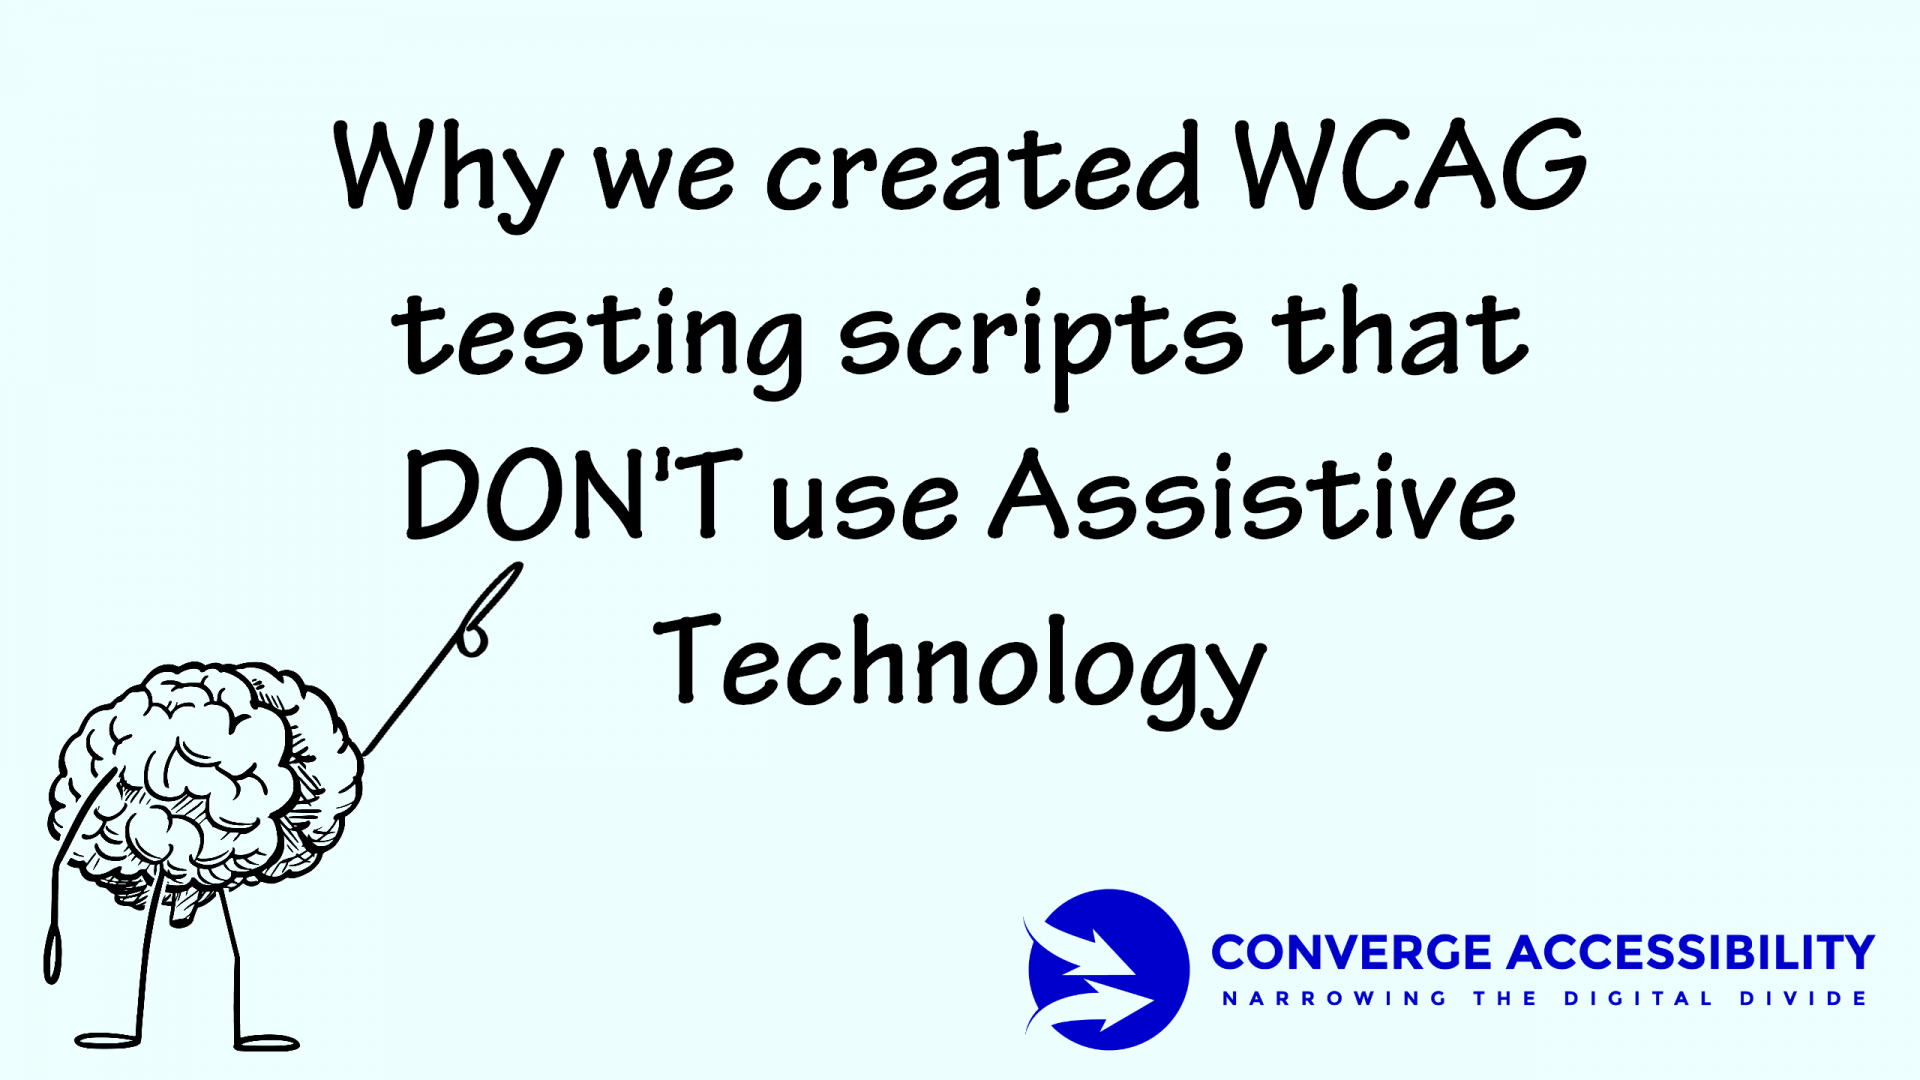 Converge Accessibility